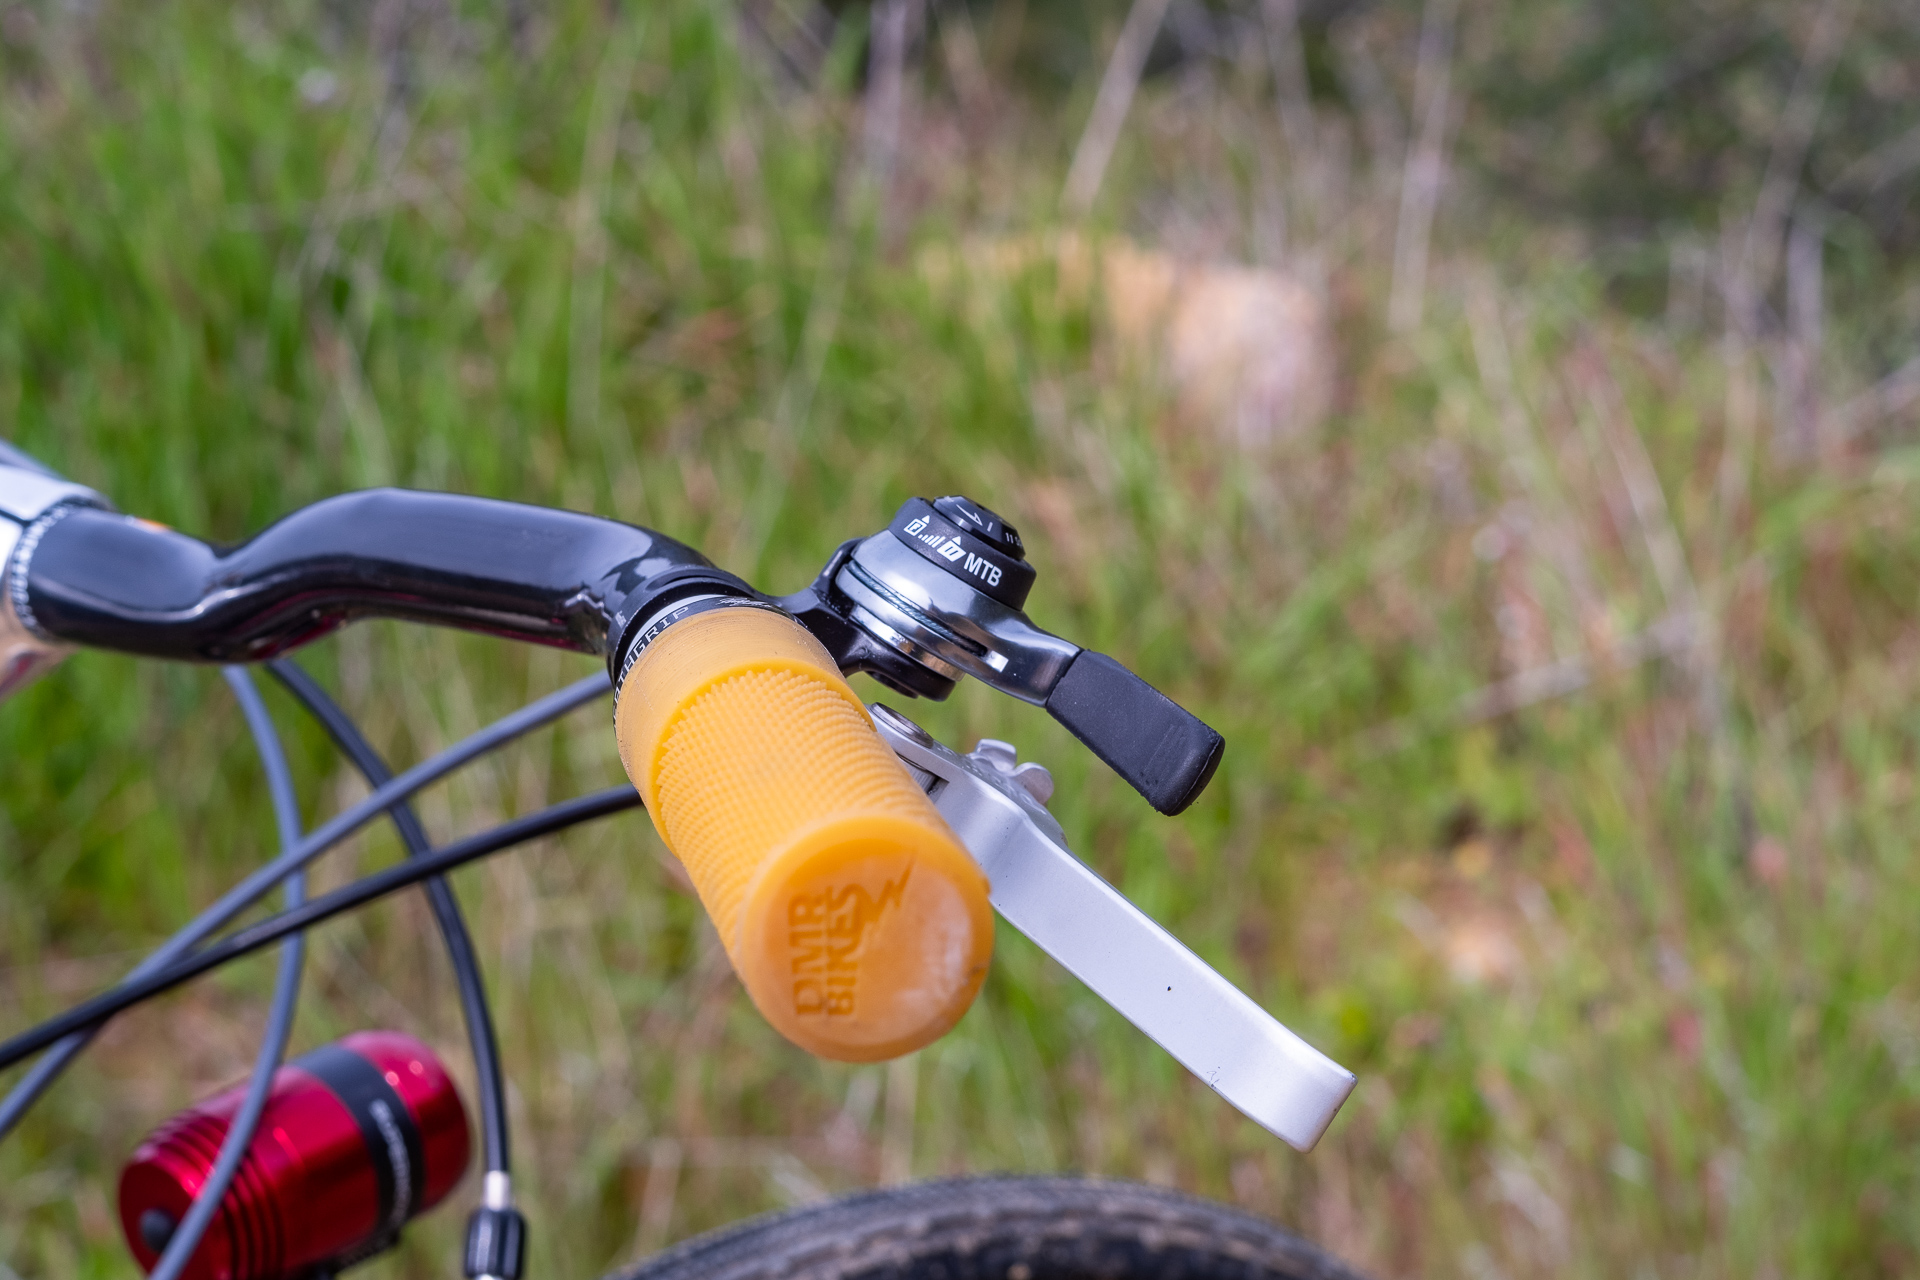 Surly Travelers Gravelers Check Microshift shifter detail.